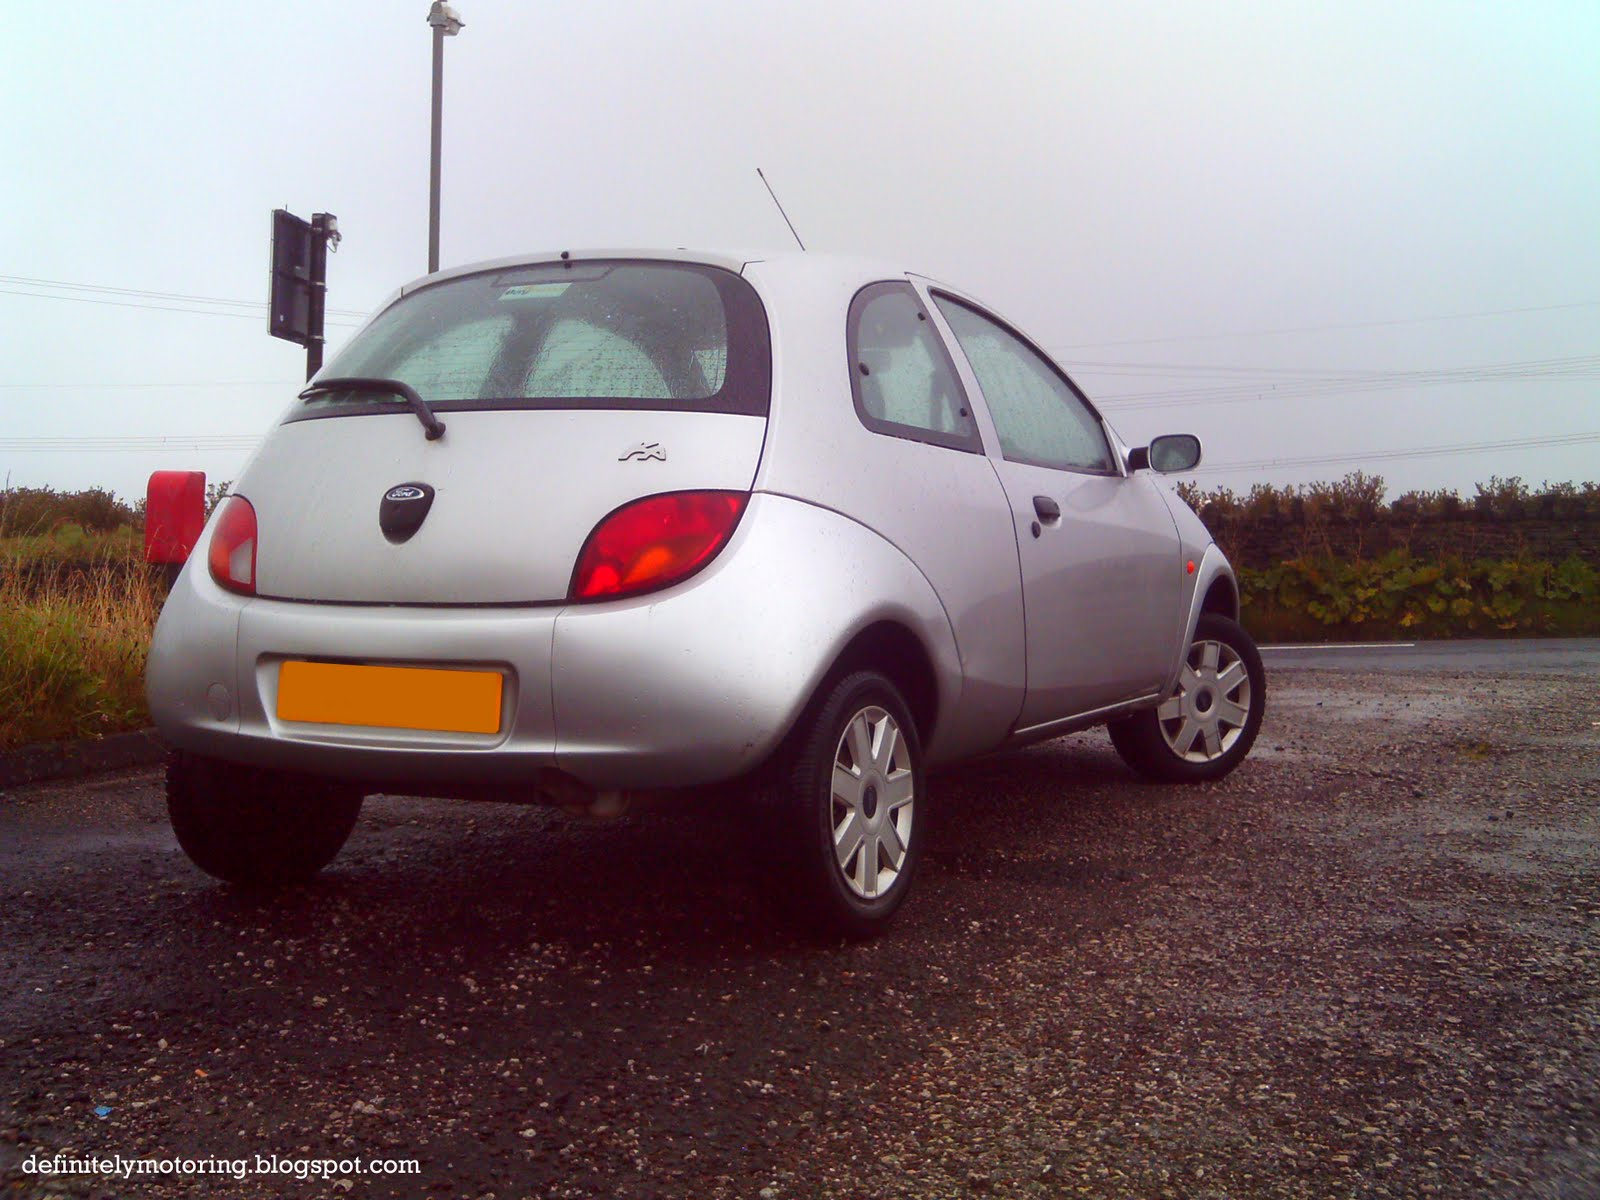 Many Thanks To My Stepfather Paul On Lending Me The Ka Whilst Mine If Is Off The Road It Is Very Much Appreciated